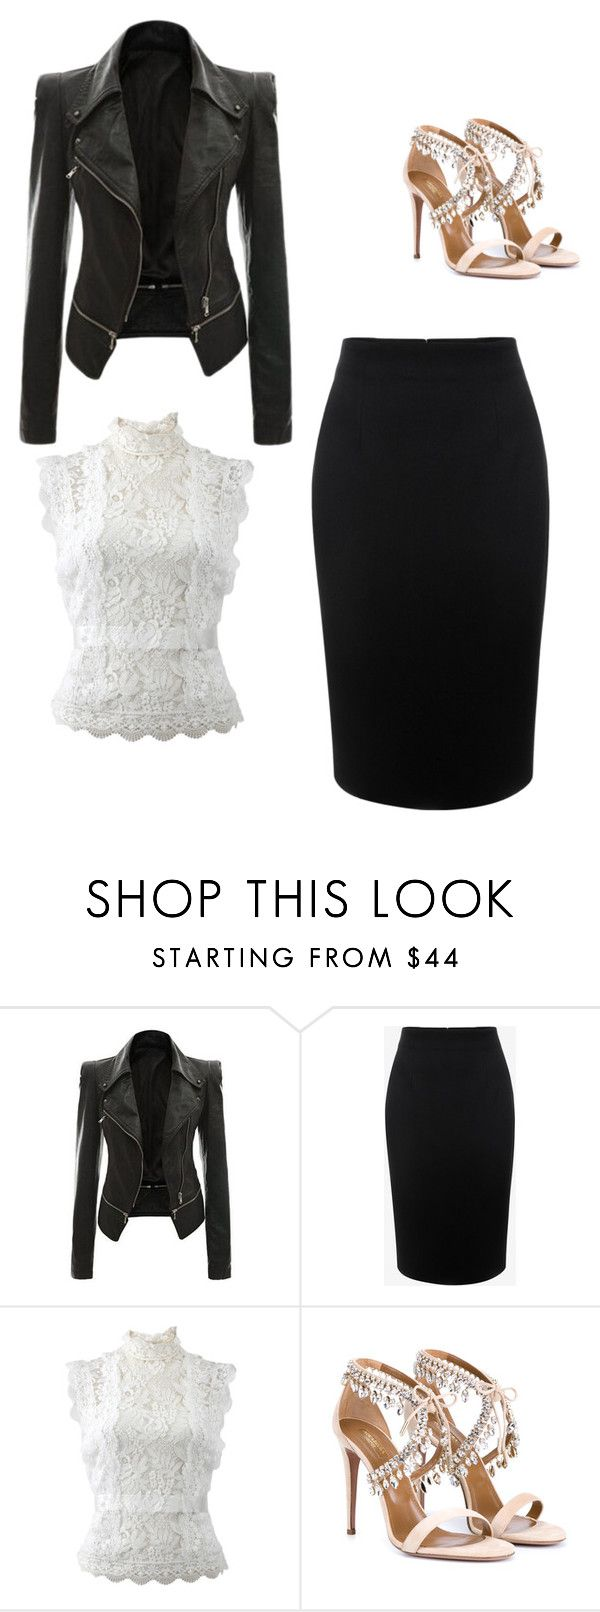 """""""Outfit for a Hourglass Body Shape"""" by aldjanedown on Polyvore featuring Alexander McQueen, Oscar de la Renta and Aquazzura"""